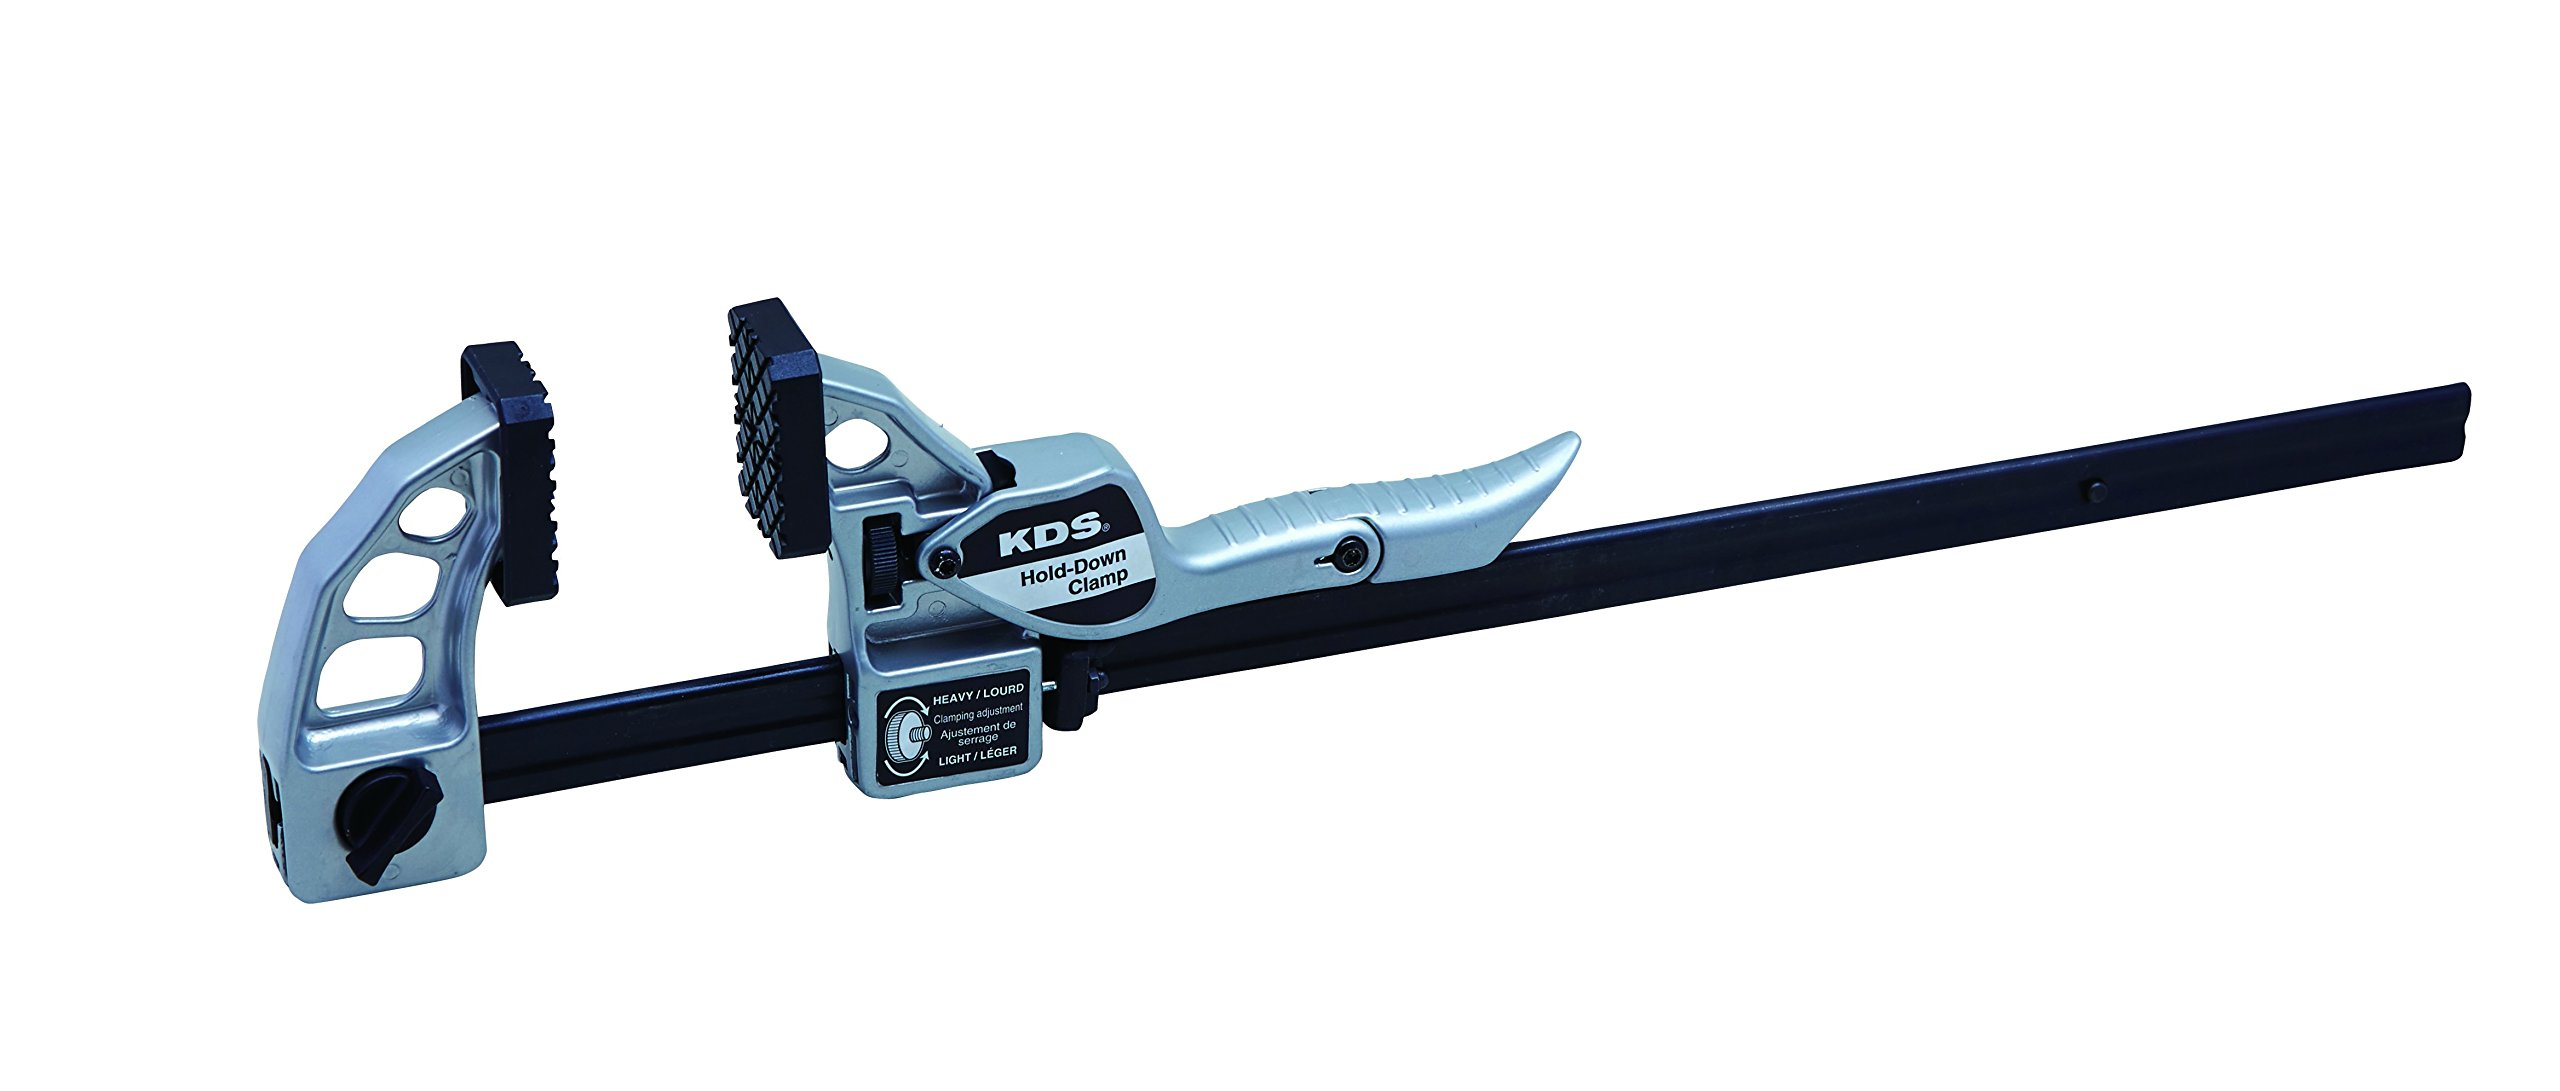 KDS MWB-600 Metal-Jaw Hold-Down Clamp, 24'', Silver